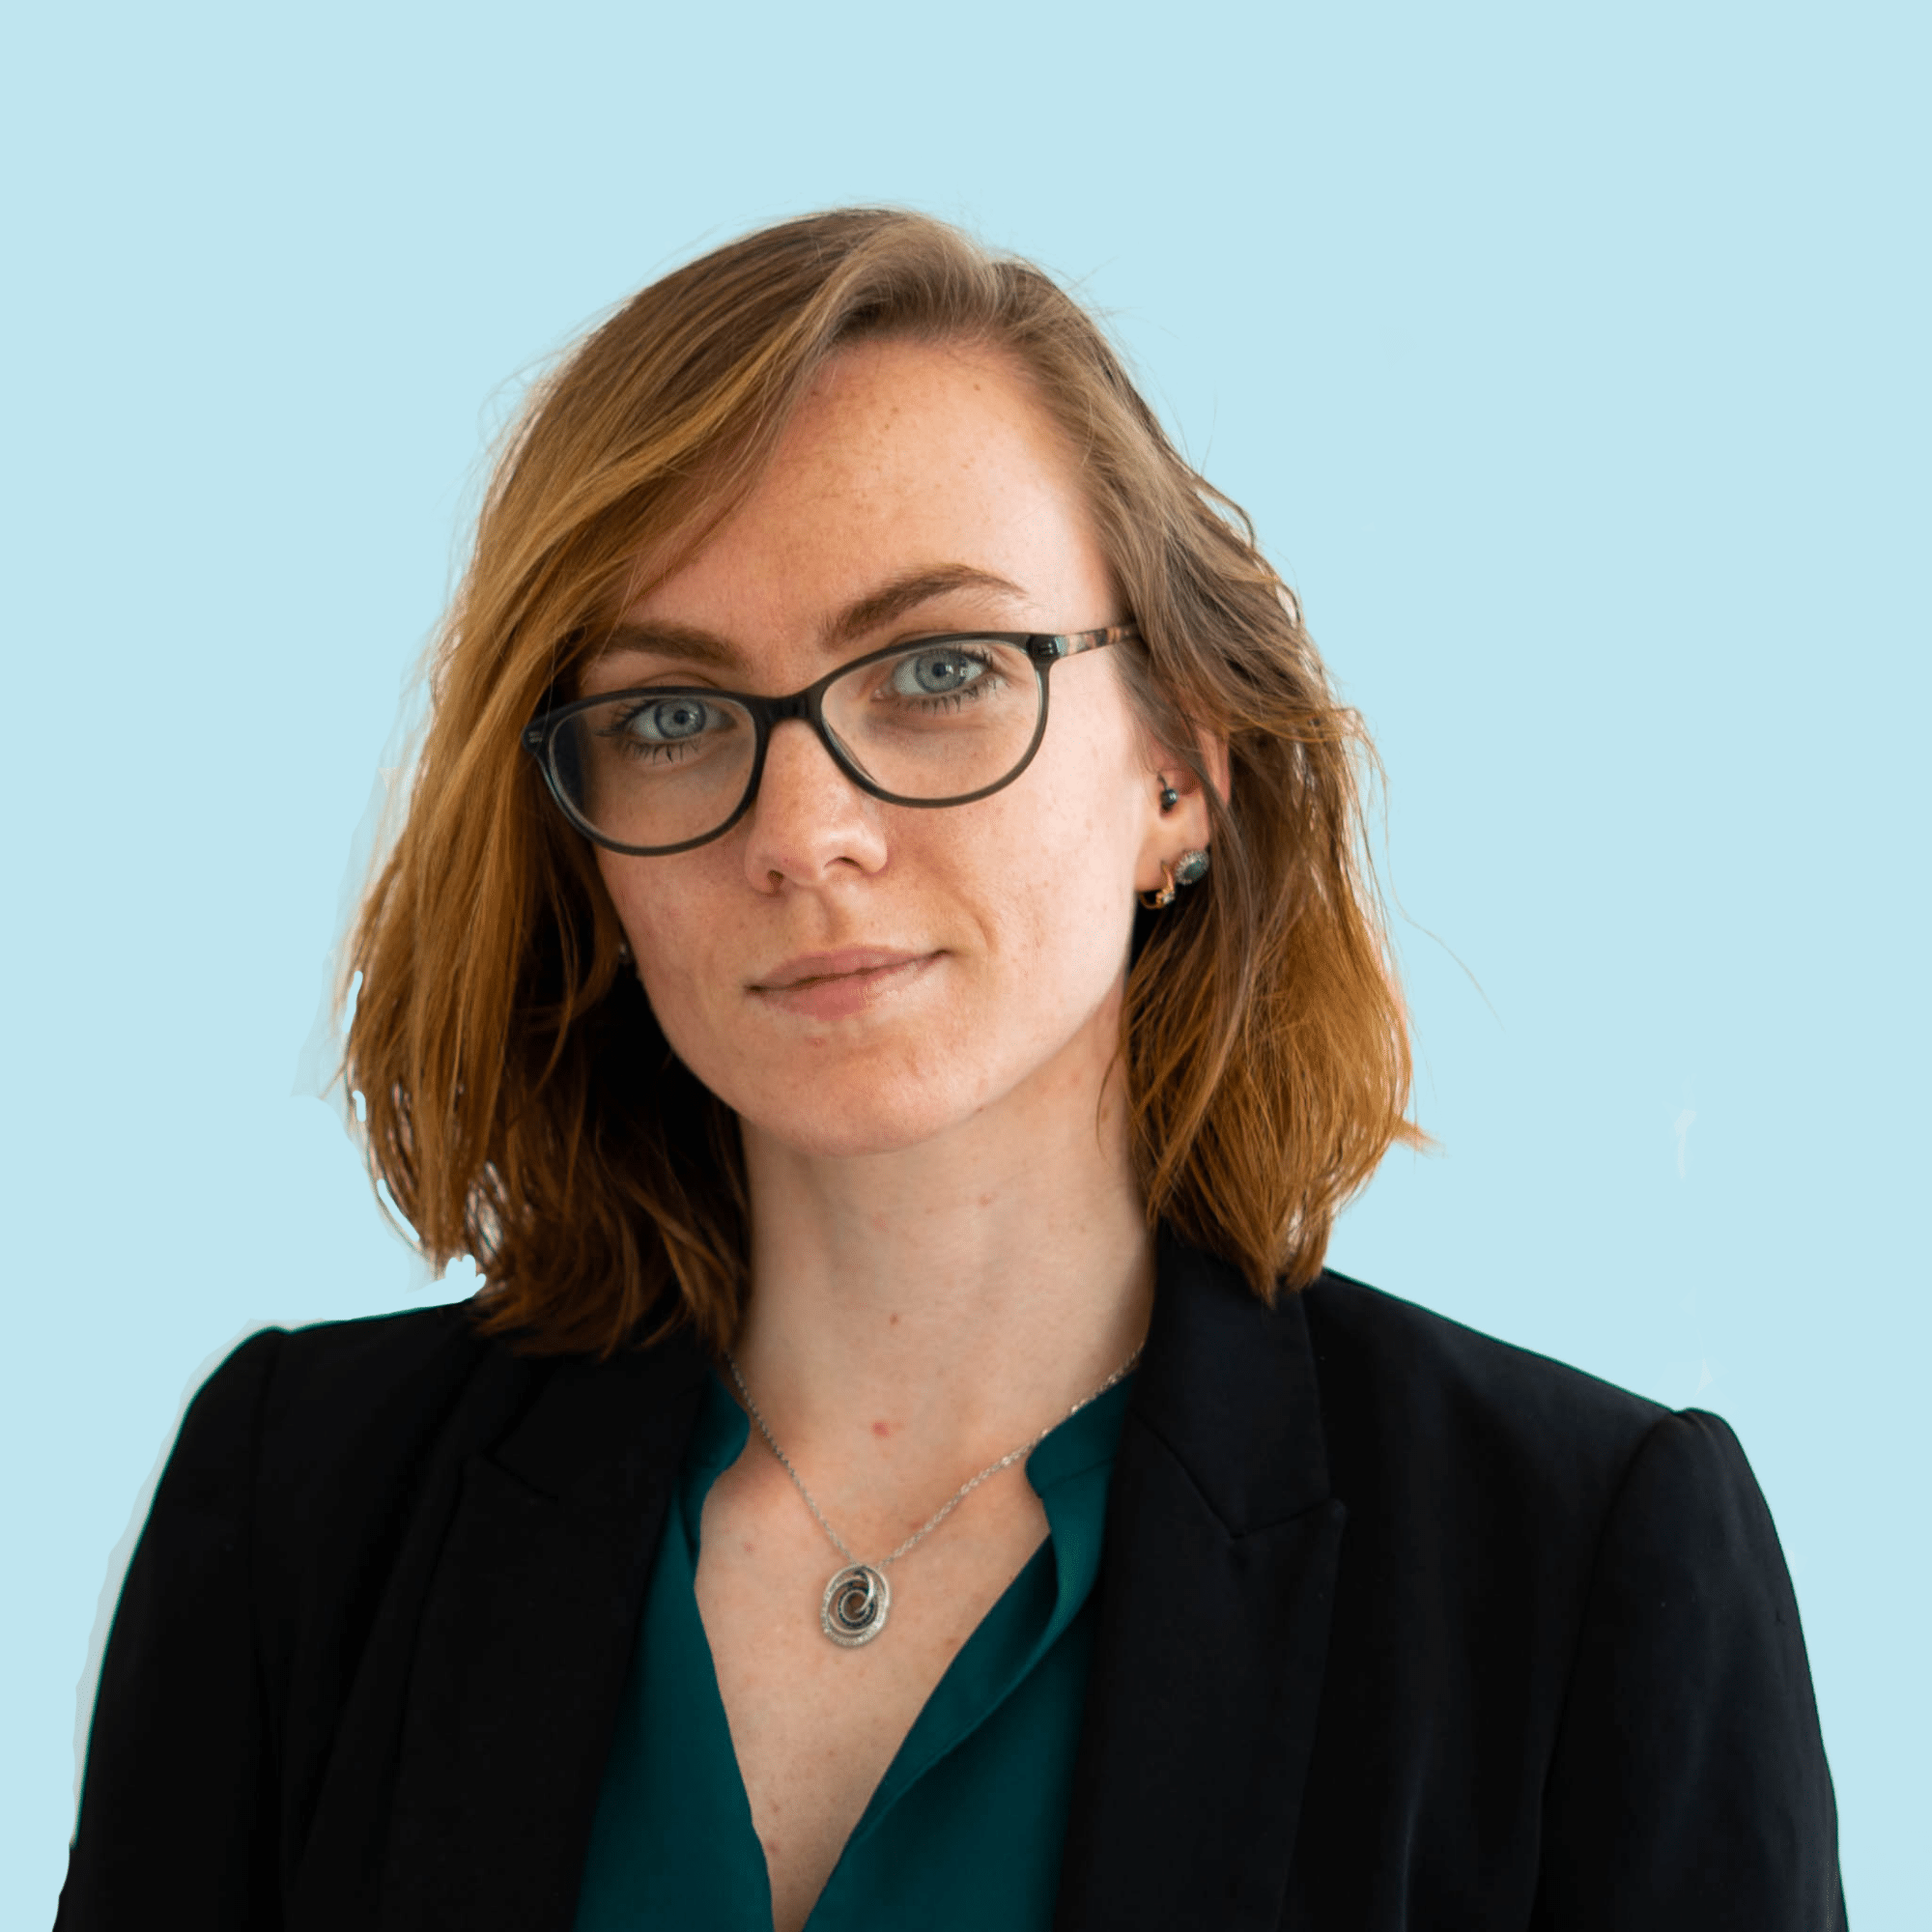 Elisabeth Squires settlement agreement solicitor